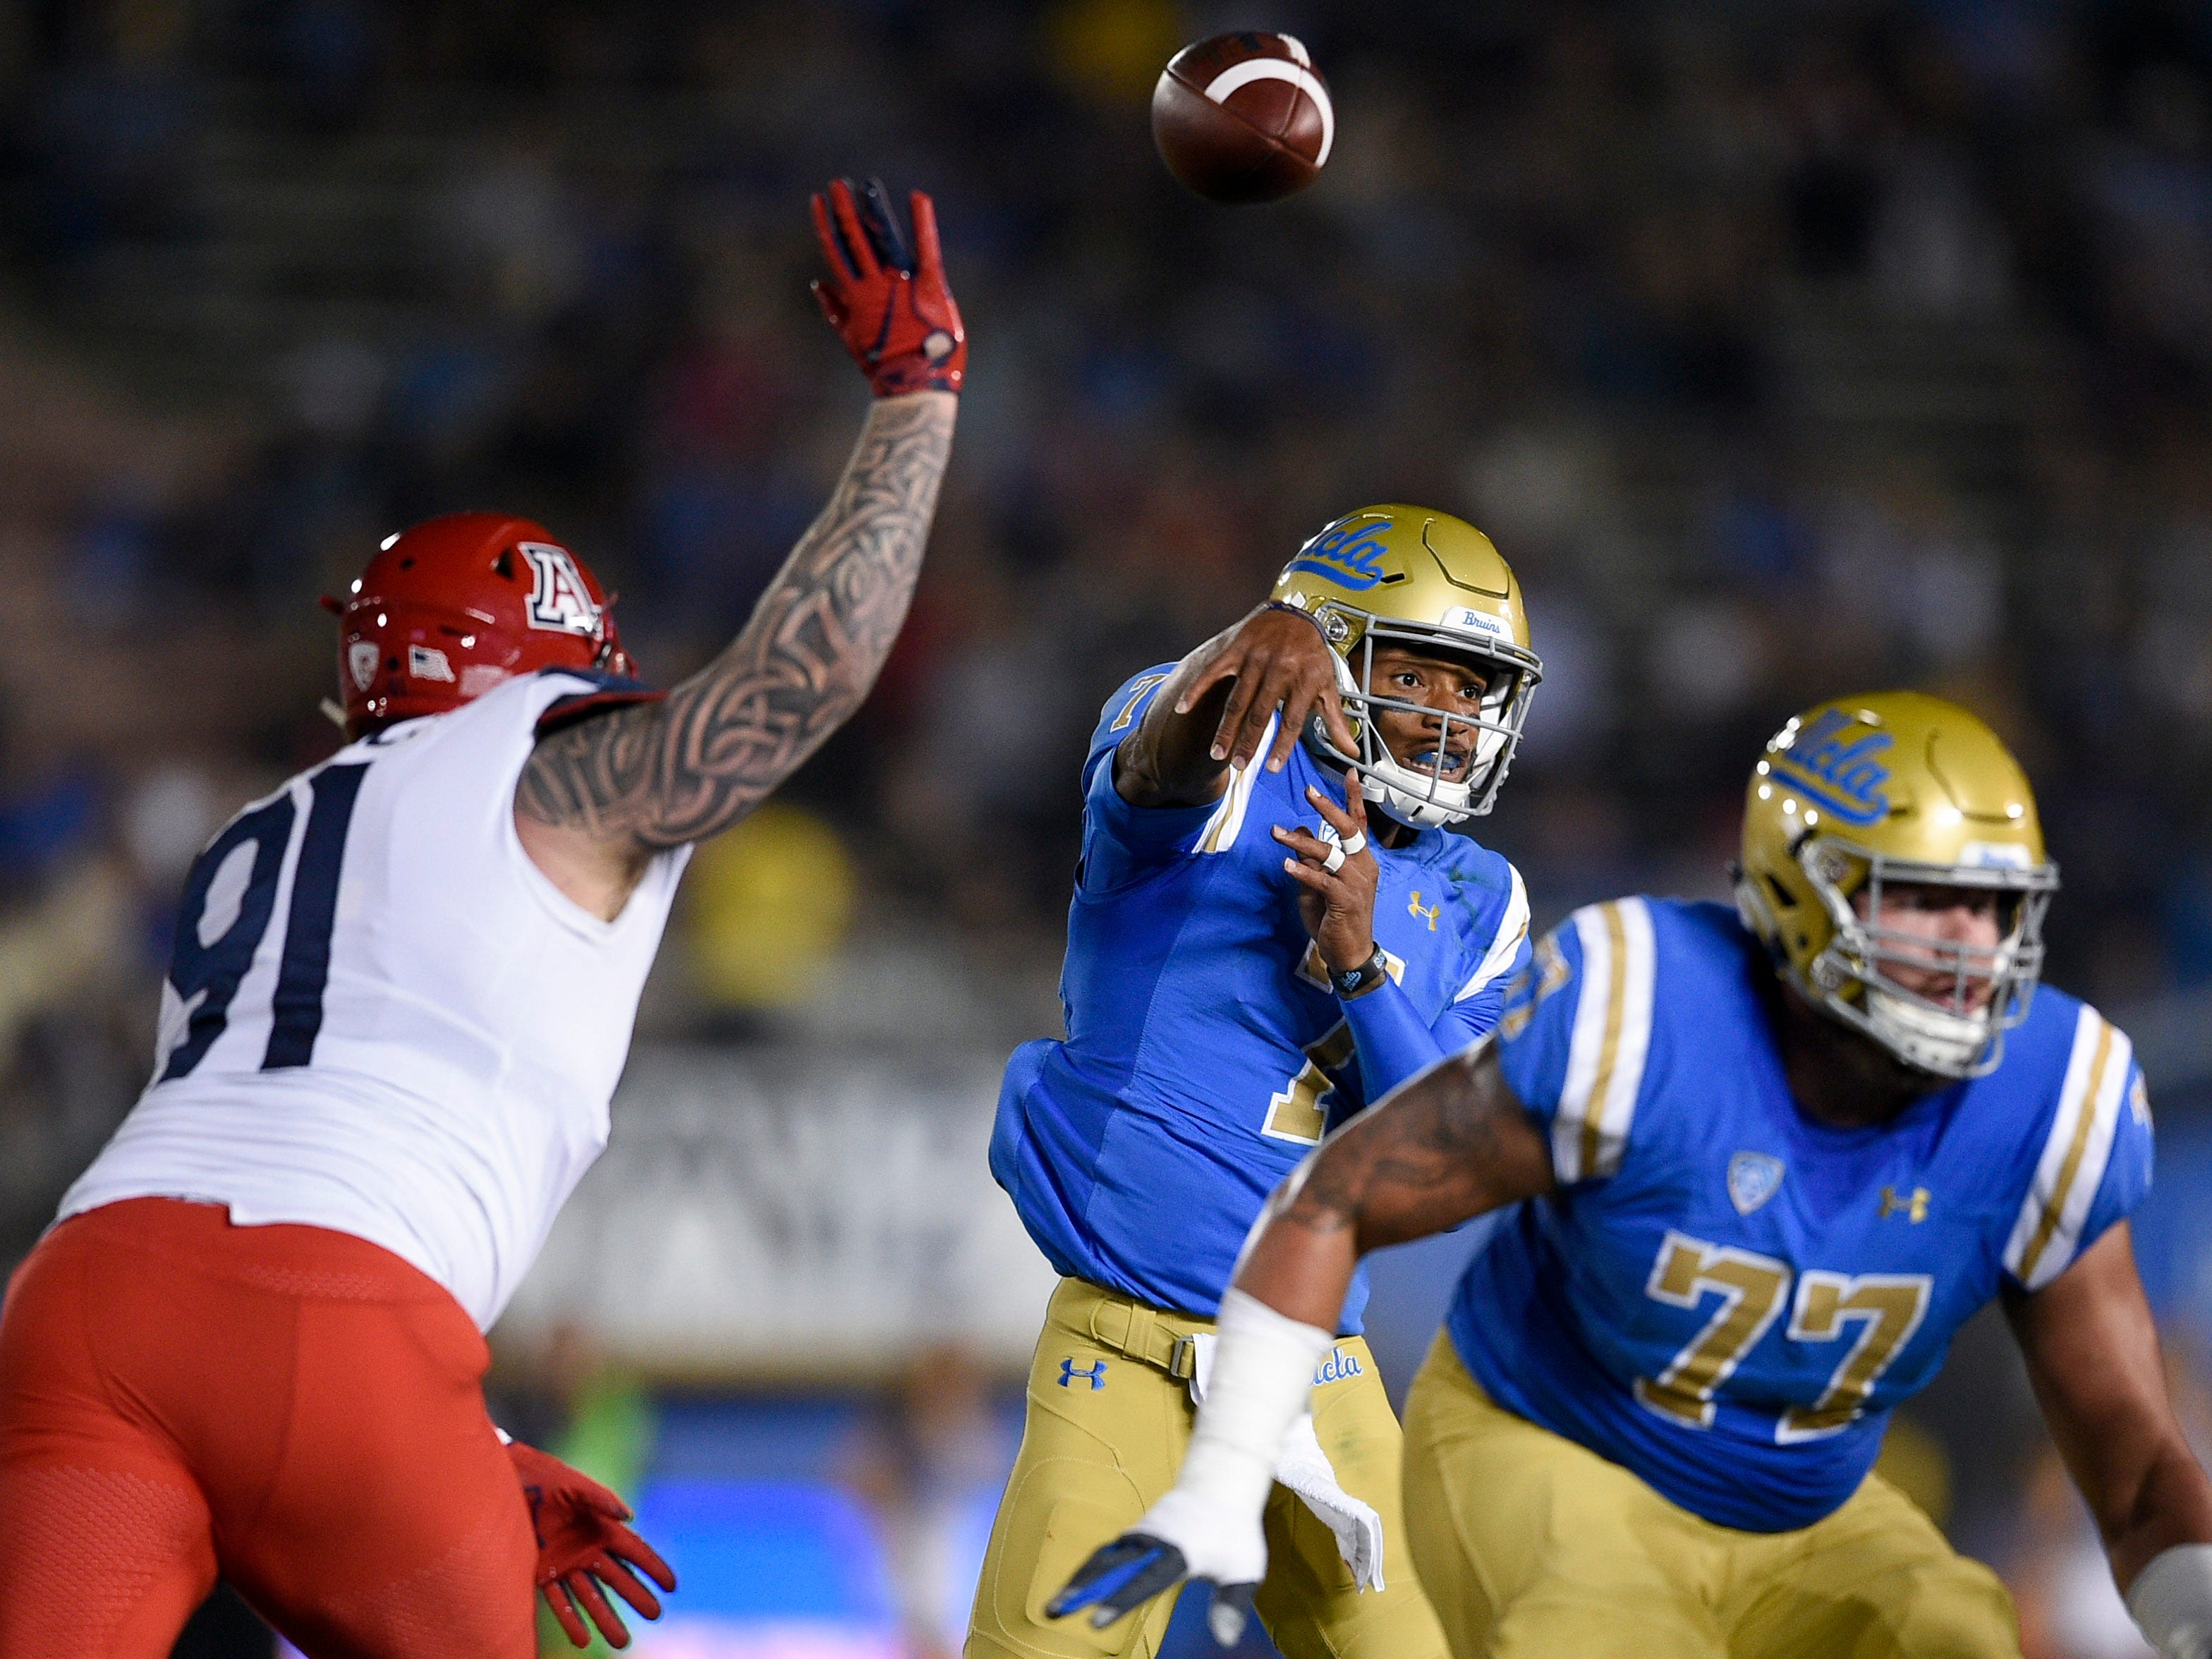 Oct 20, 2018; Pasadena, CA, USA; UCLA Bruins quarterback Dorian Thompson-Robinson (7) attempts a pass during the first half against the Arizona Wildcats at Rose Bowl. Mandatory Credit: Kelvin Kuo-USA TODAY Sports